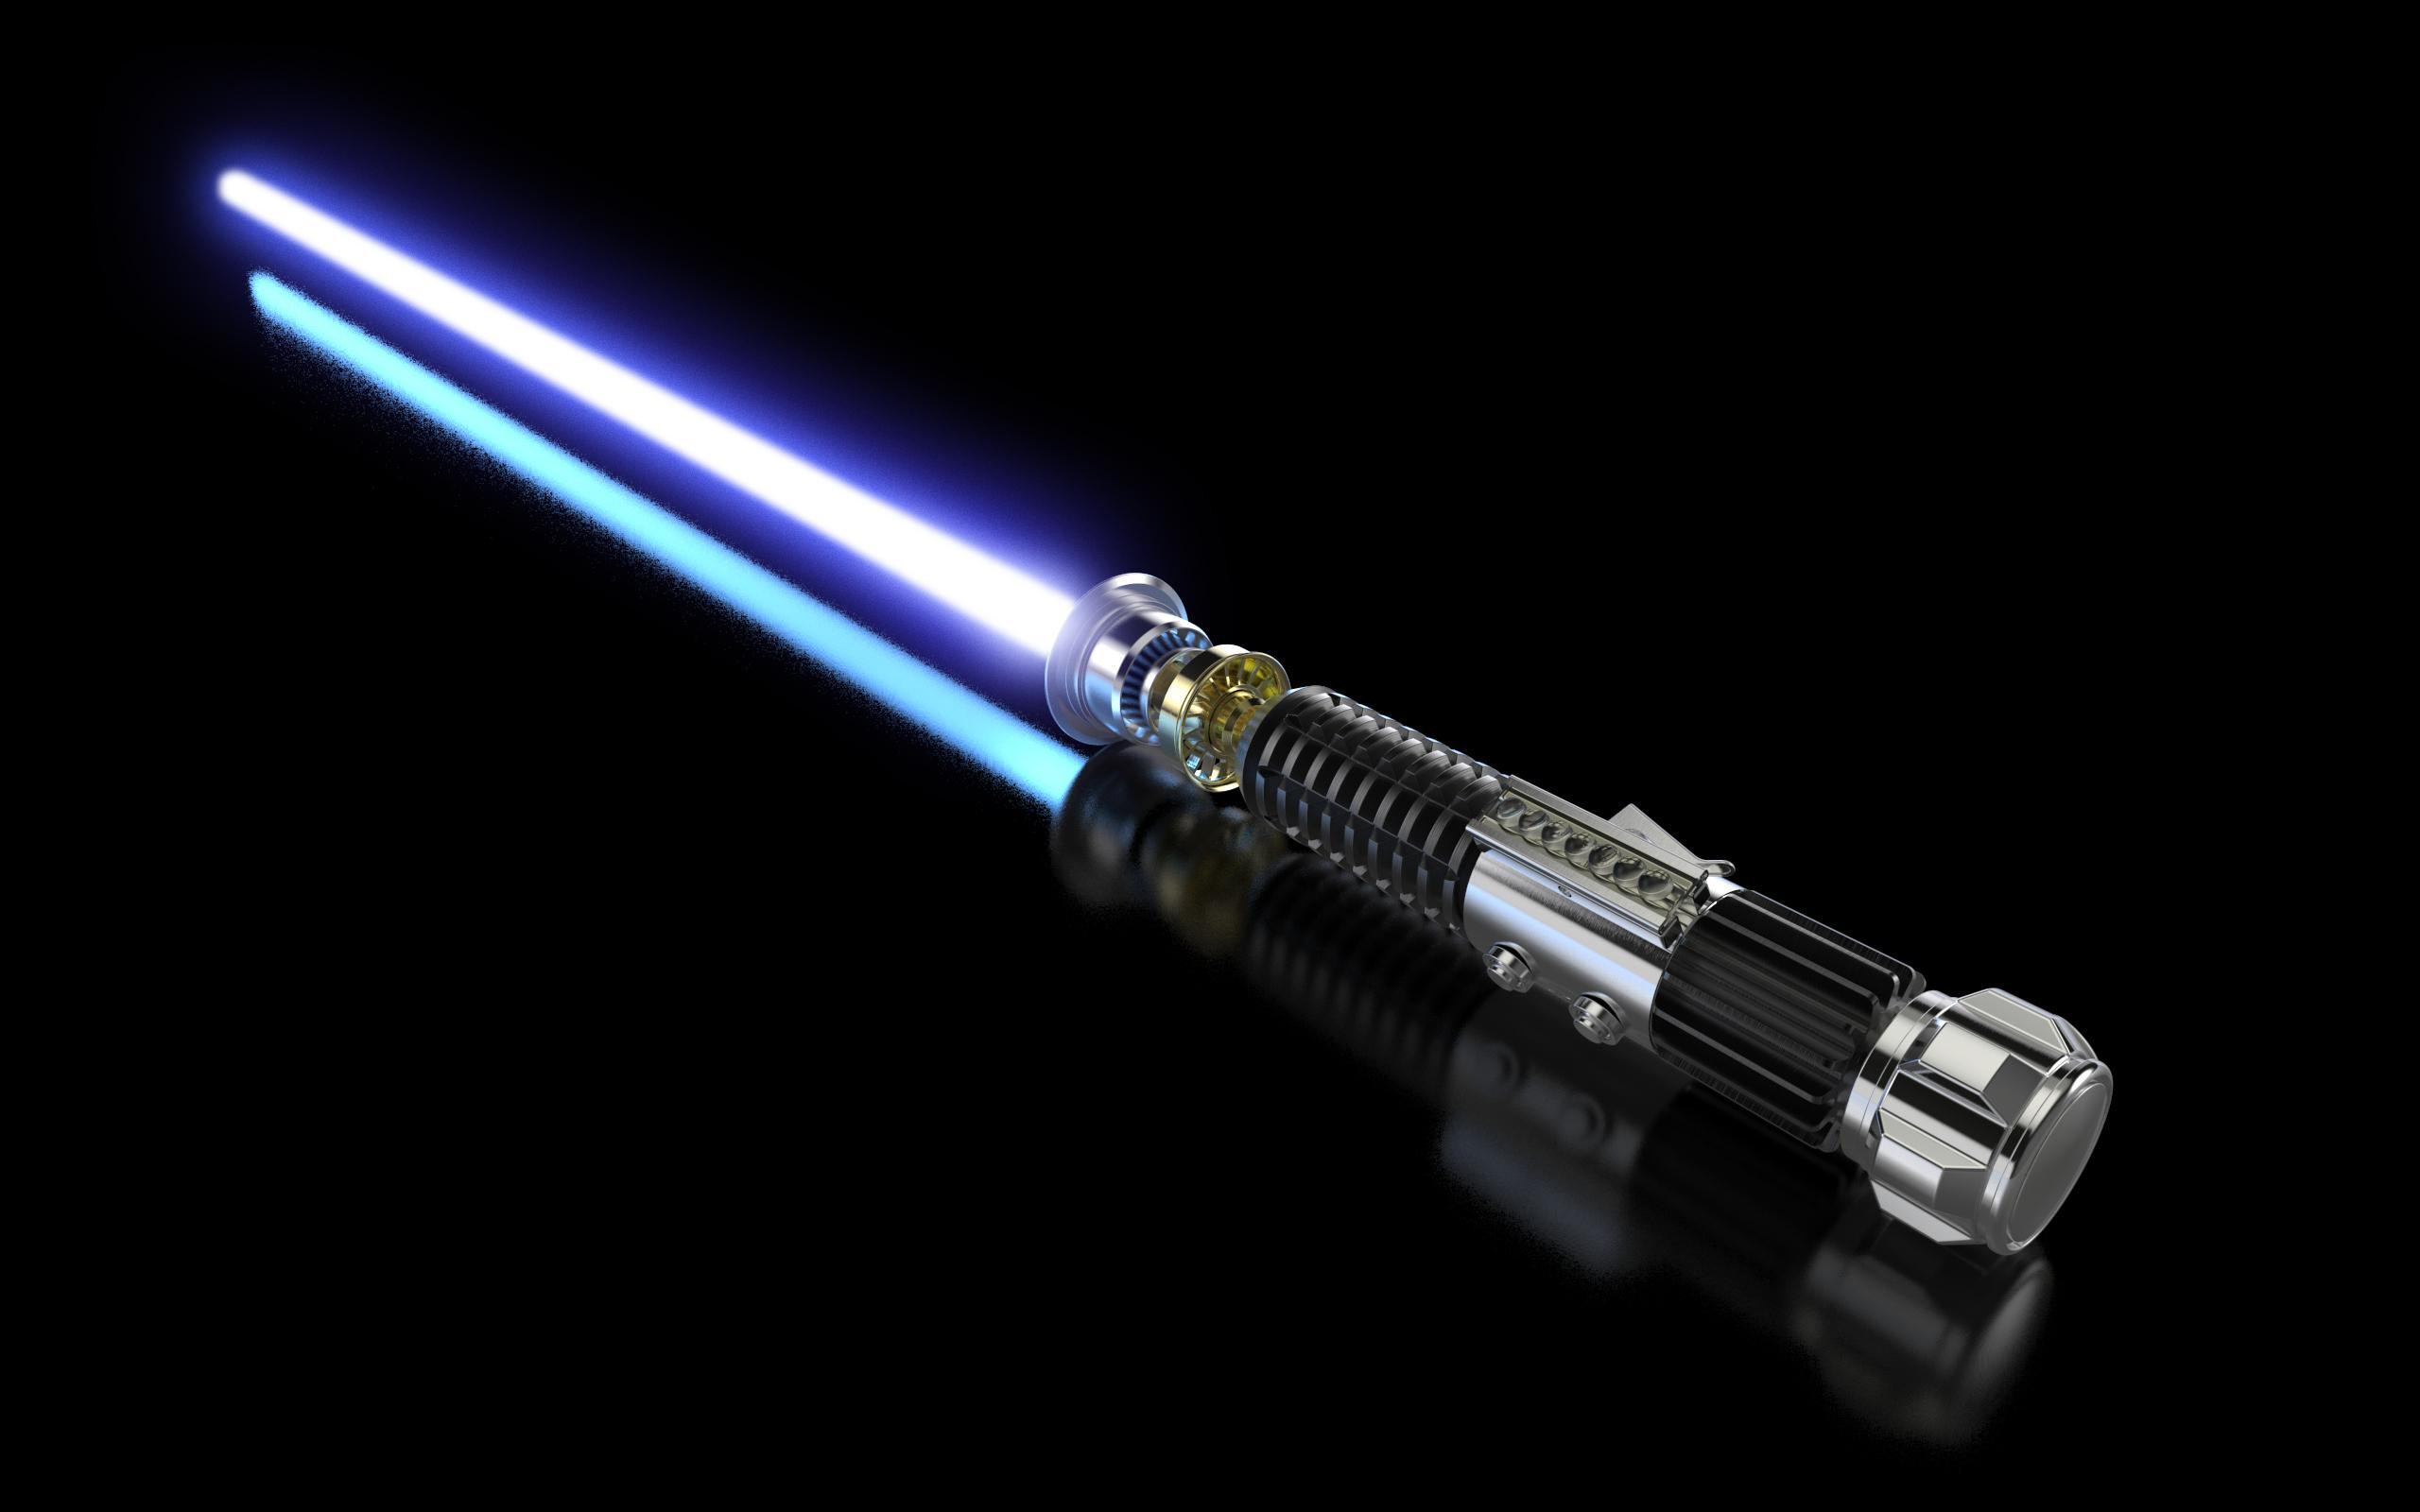 2560x1600 Star Wars Lightsaber Wallpaper - WallpaperSafari